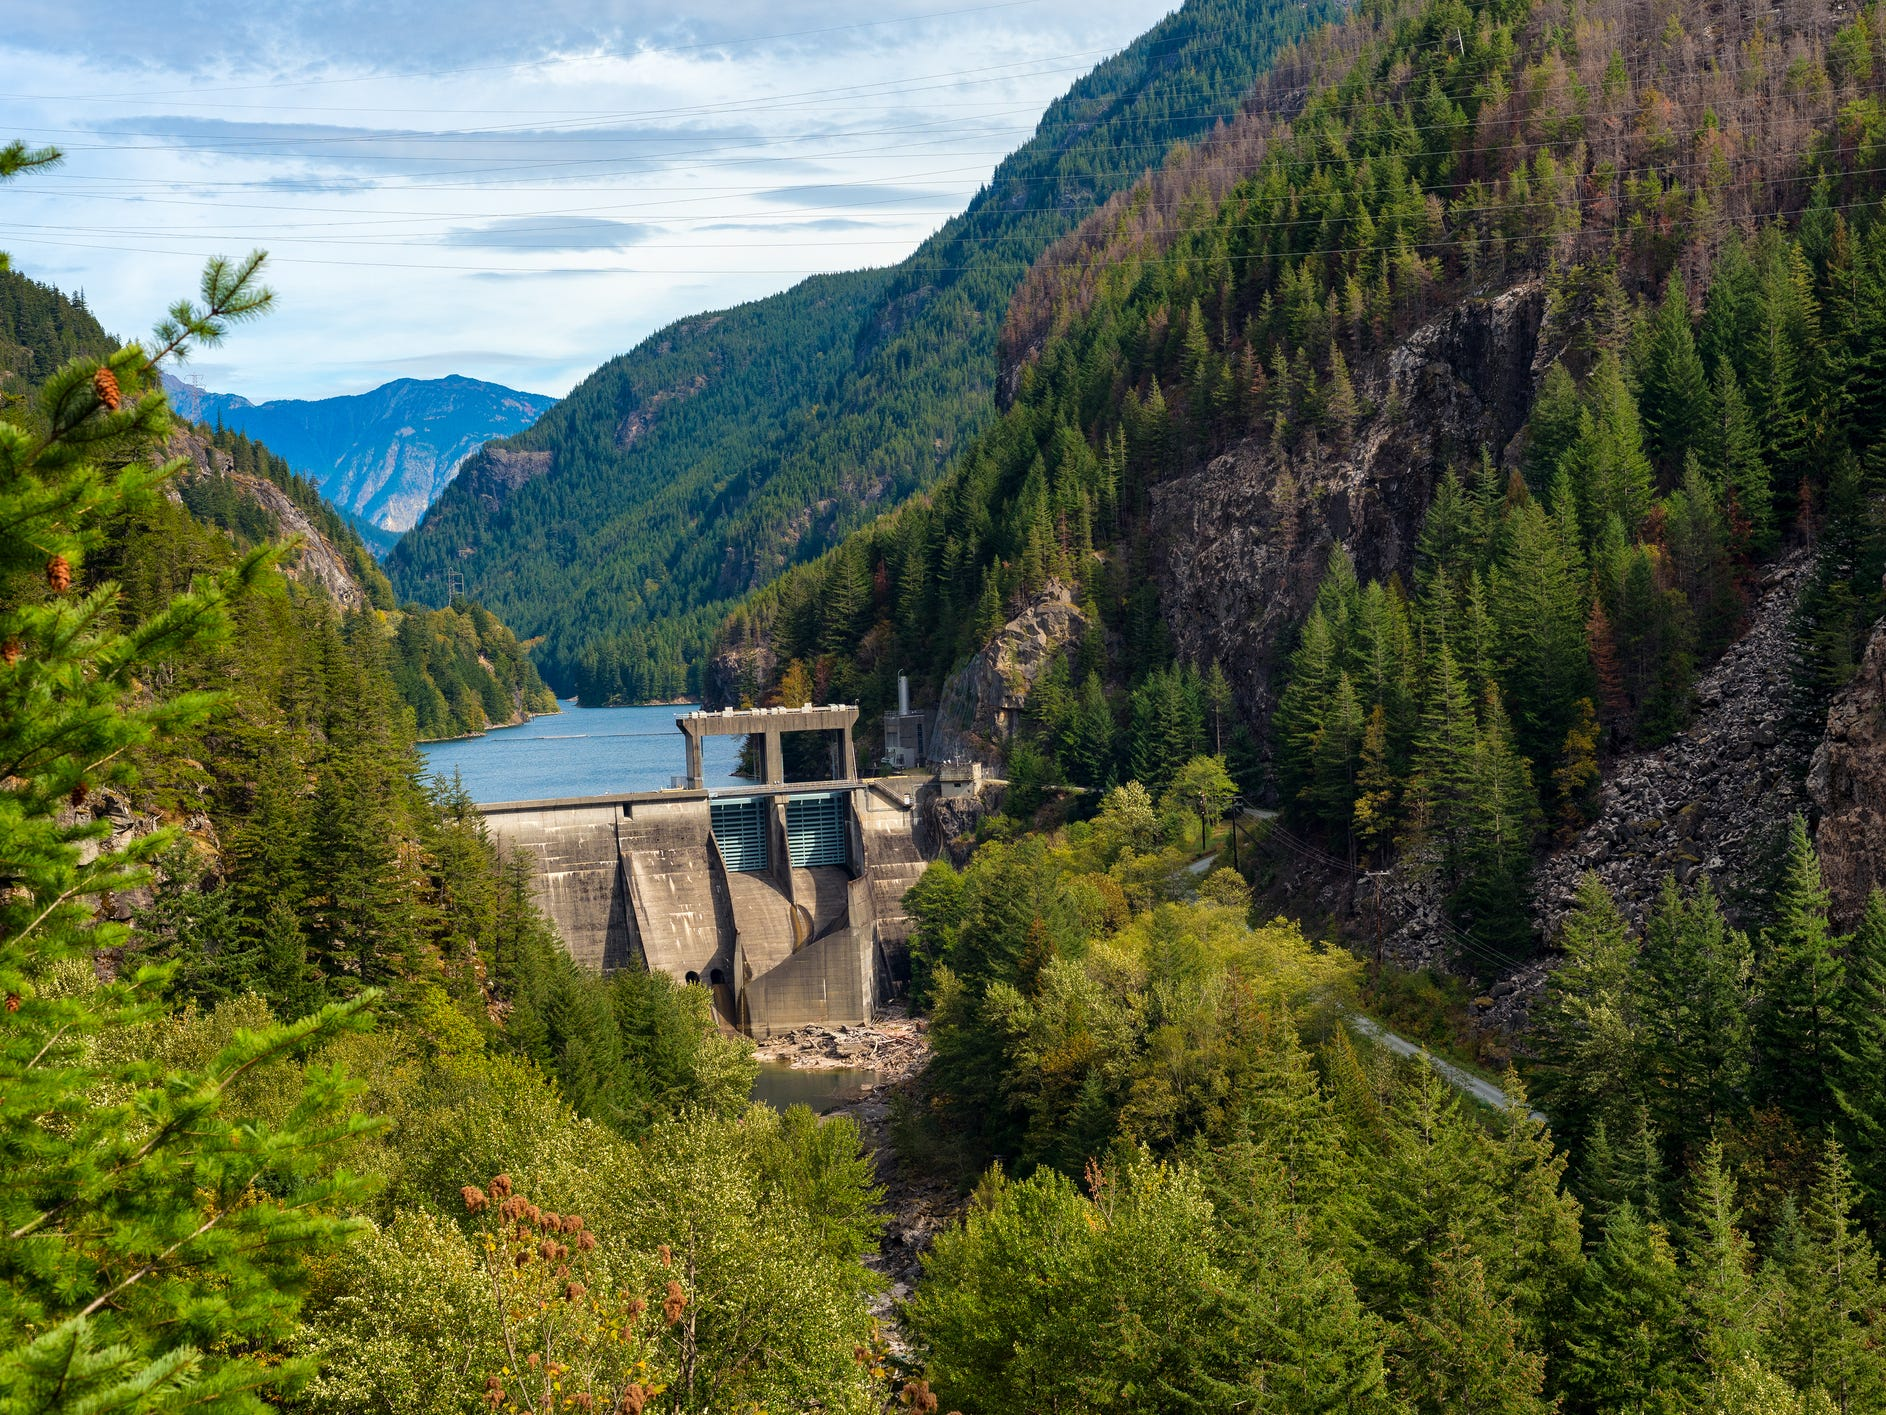 Gorge Dam in Washington.